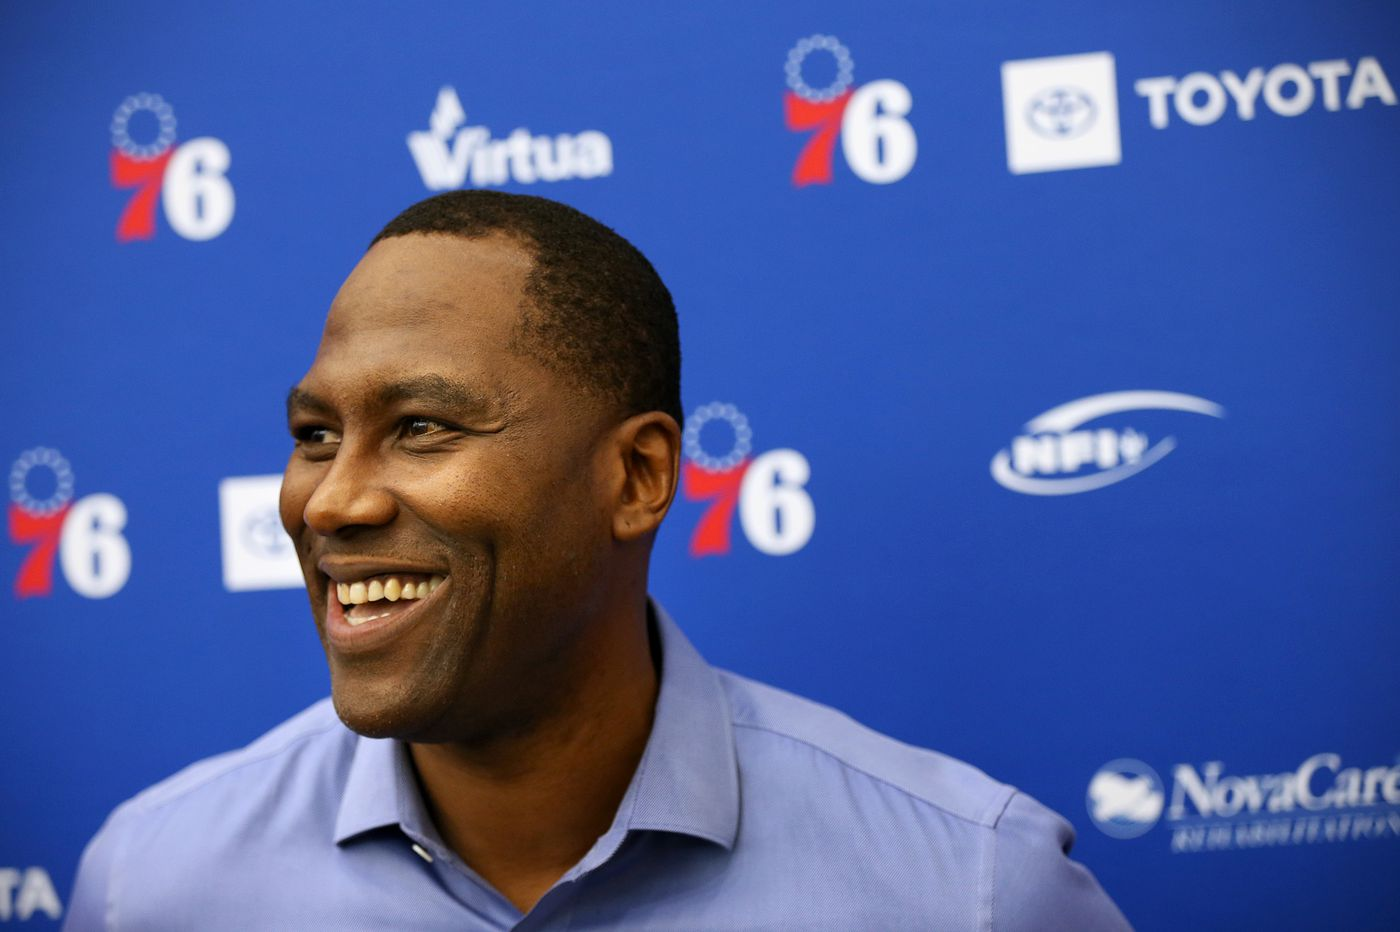 NBA draft: After past missteps, pressure is on Sixers' Elton Brand to make right pick | Keith Pompey